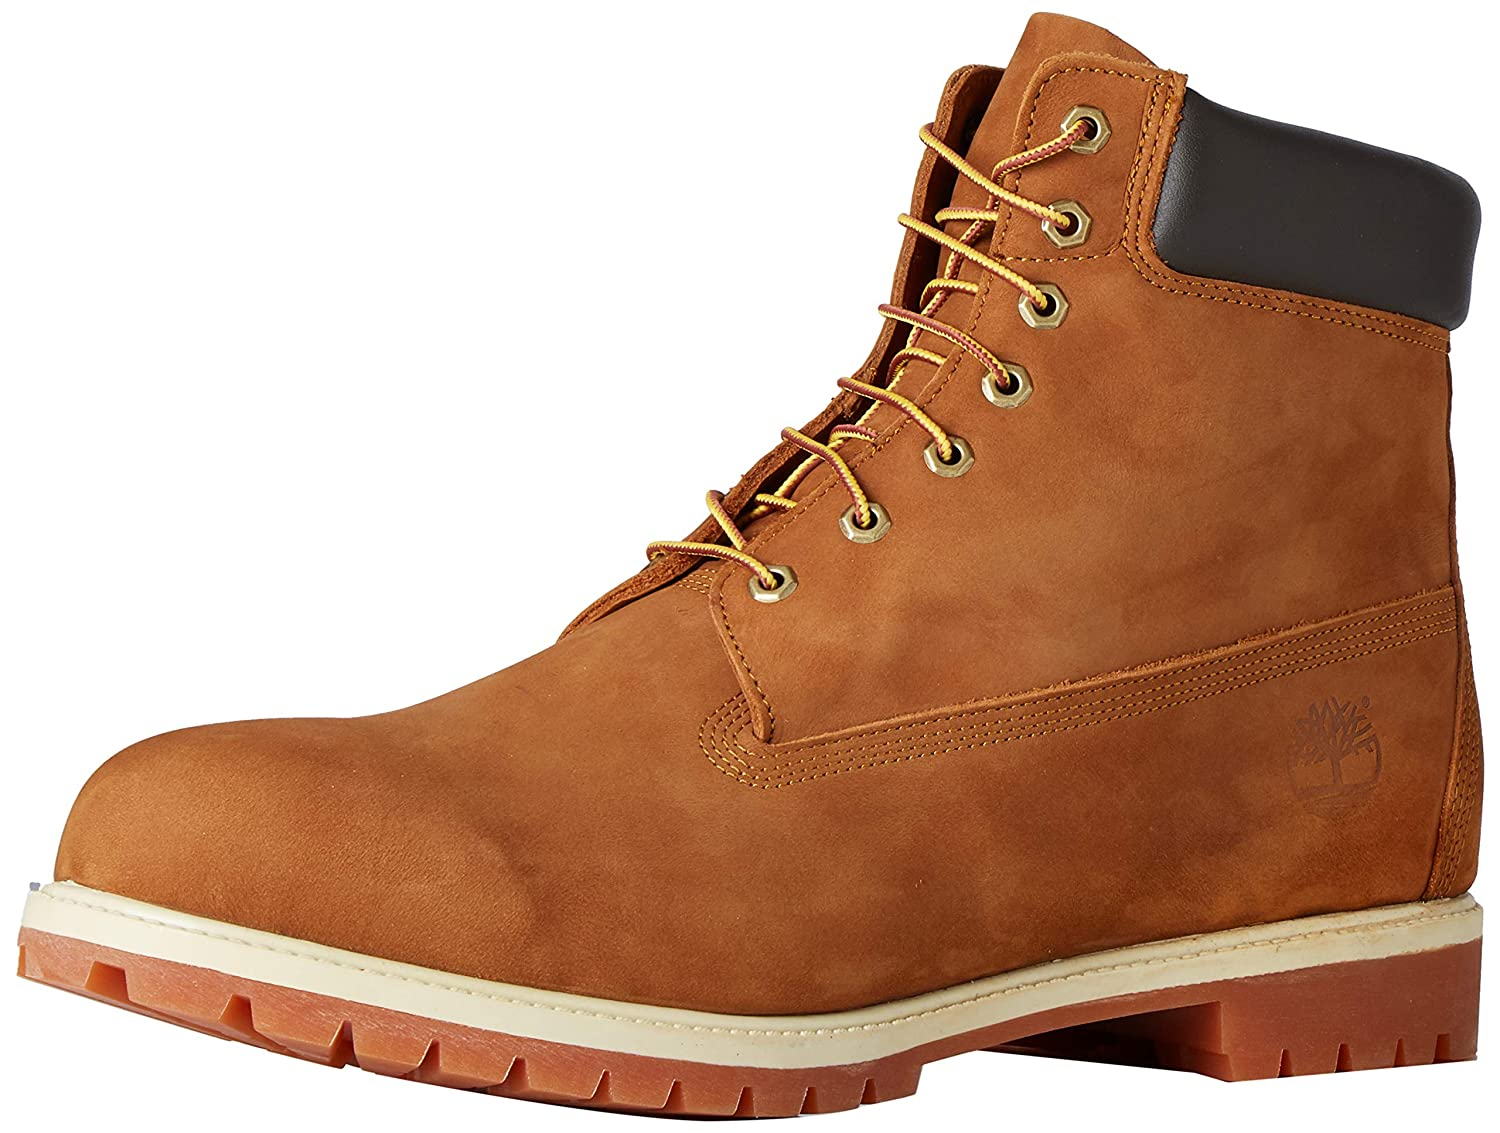 5328b8bfe14 Timberland Men's 6 In Premium Waterproof (wide fit) Boots